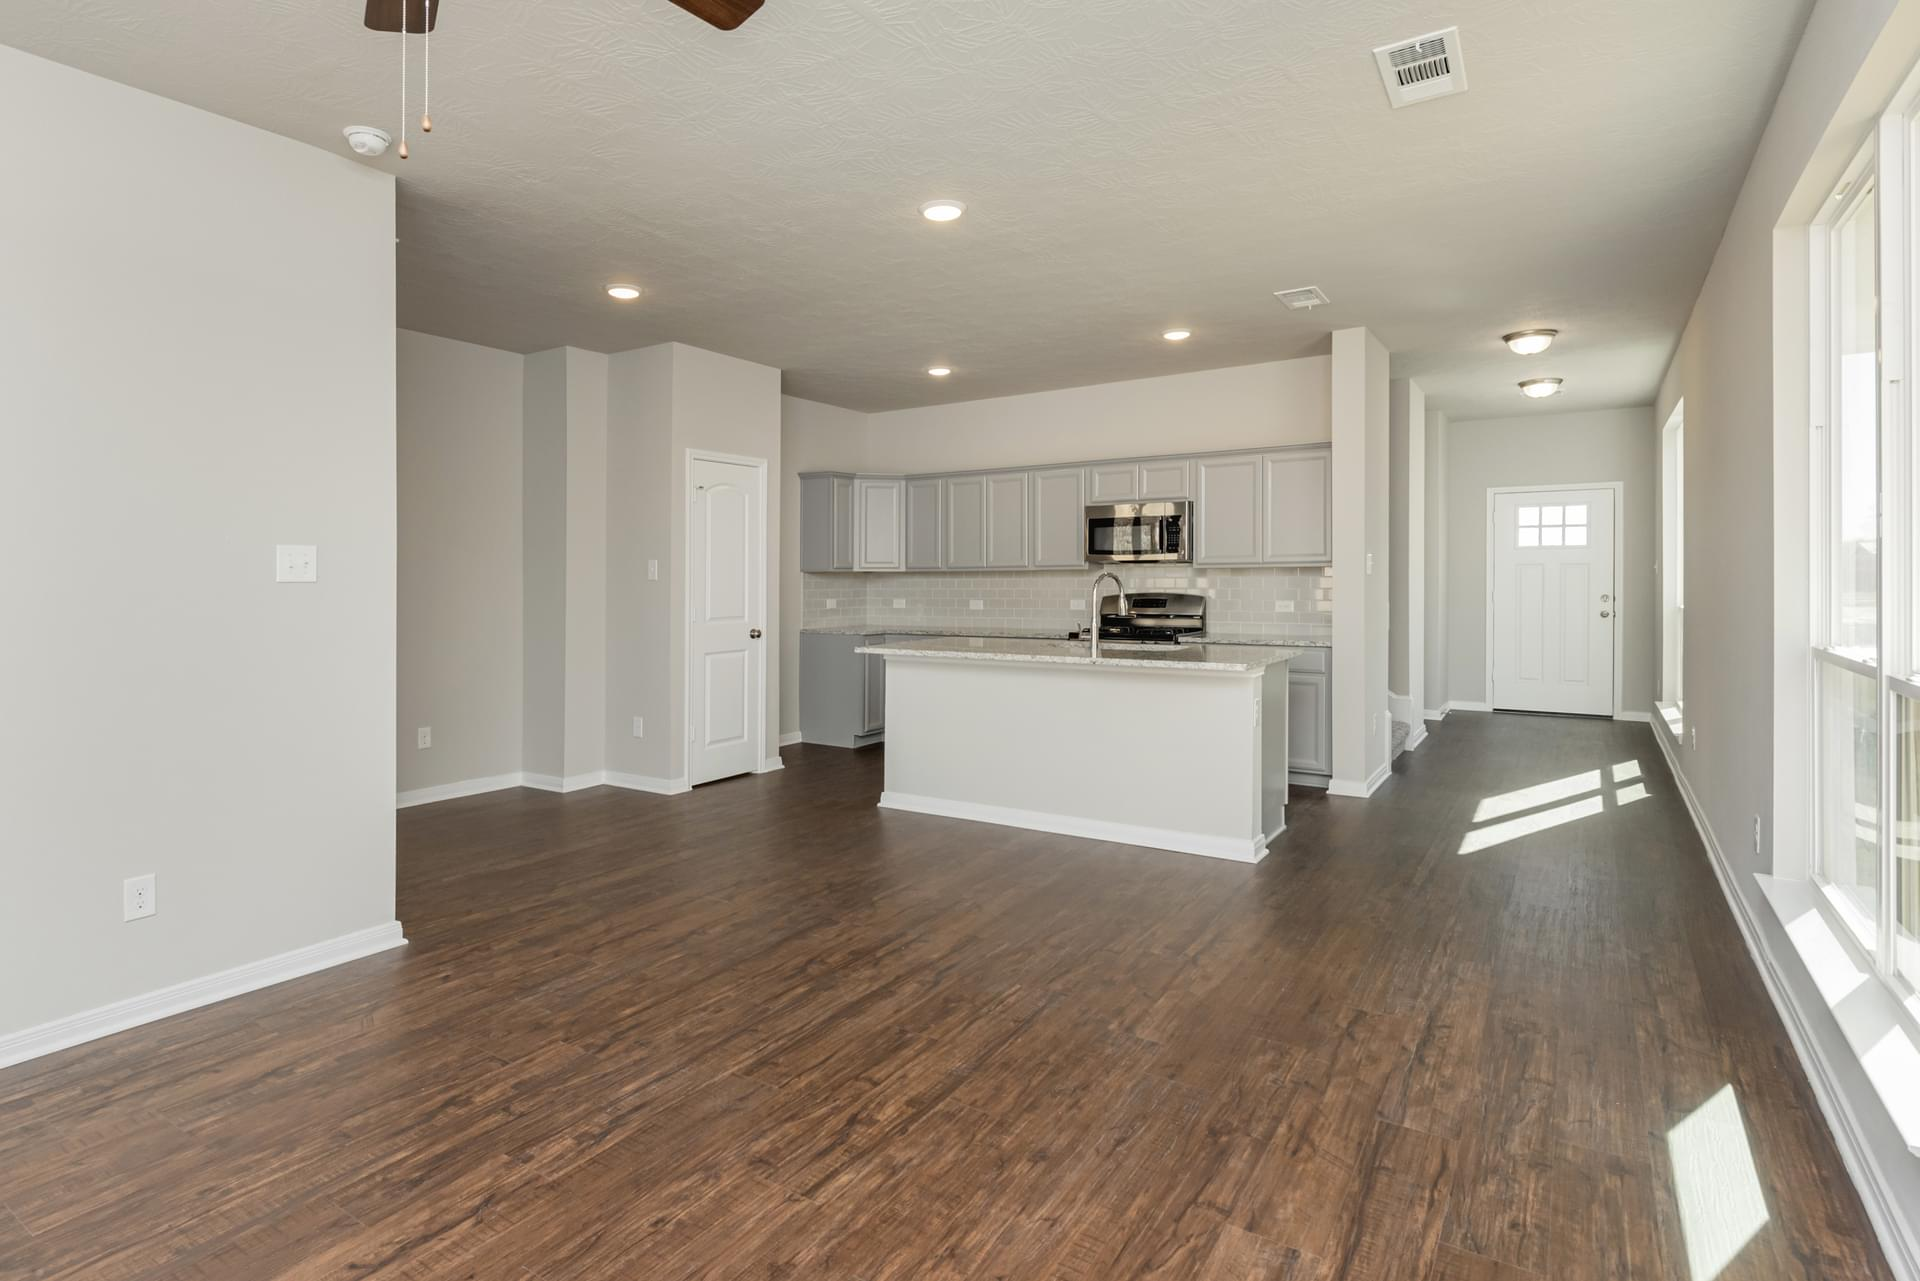 1,953sf New Home in College Station, TX